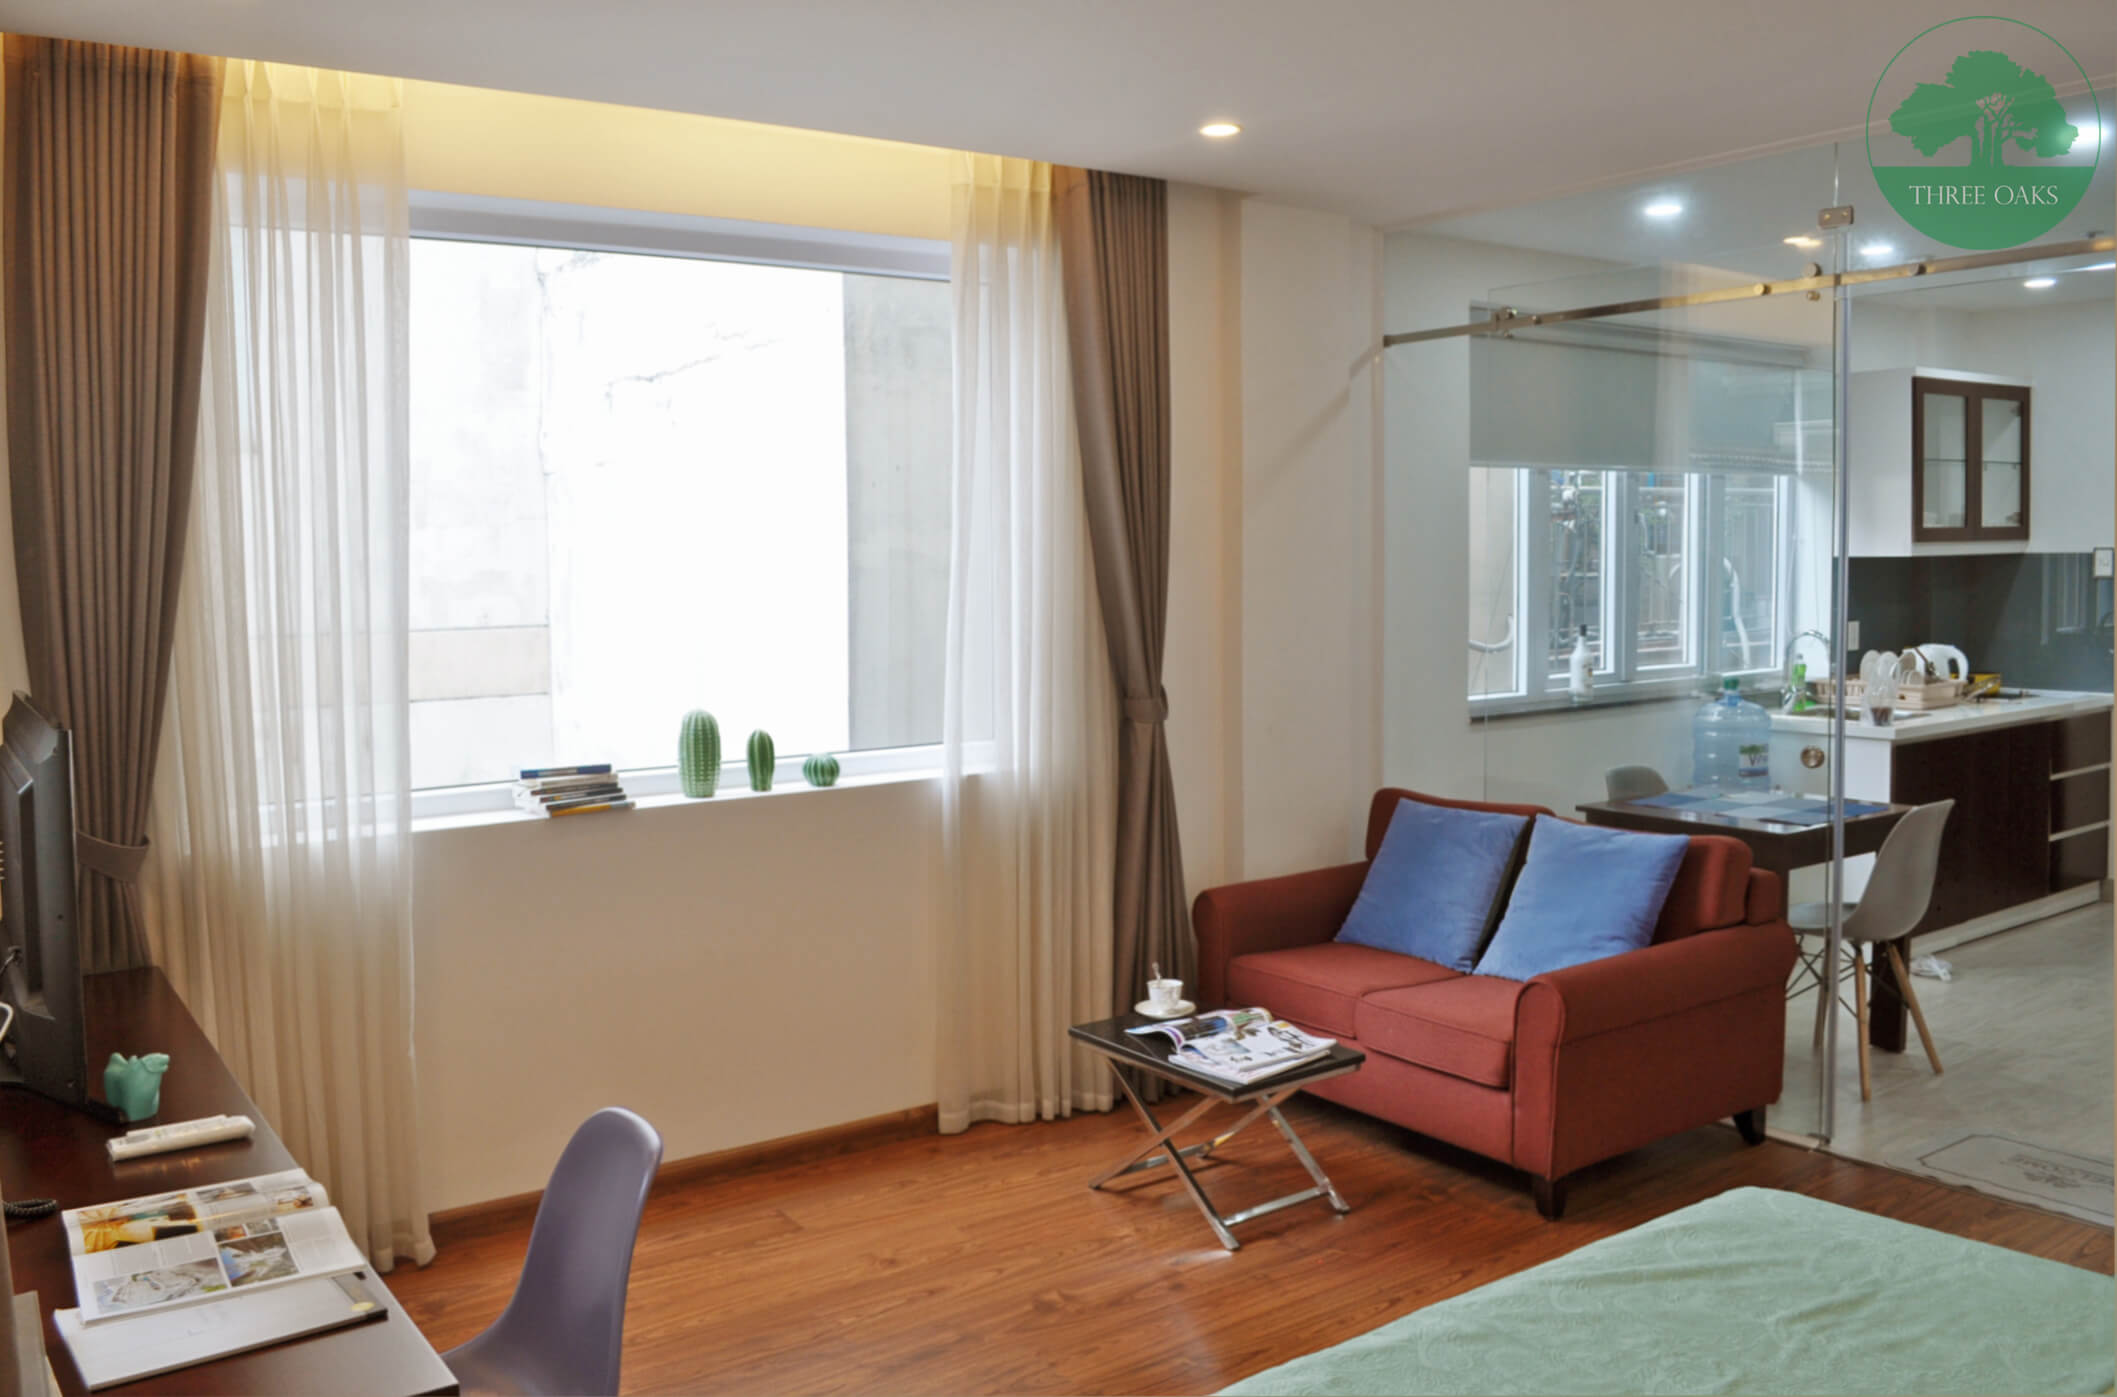 THREE_OAKS_4_SERVICED_APARMENT_TYPE_B_11